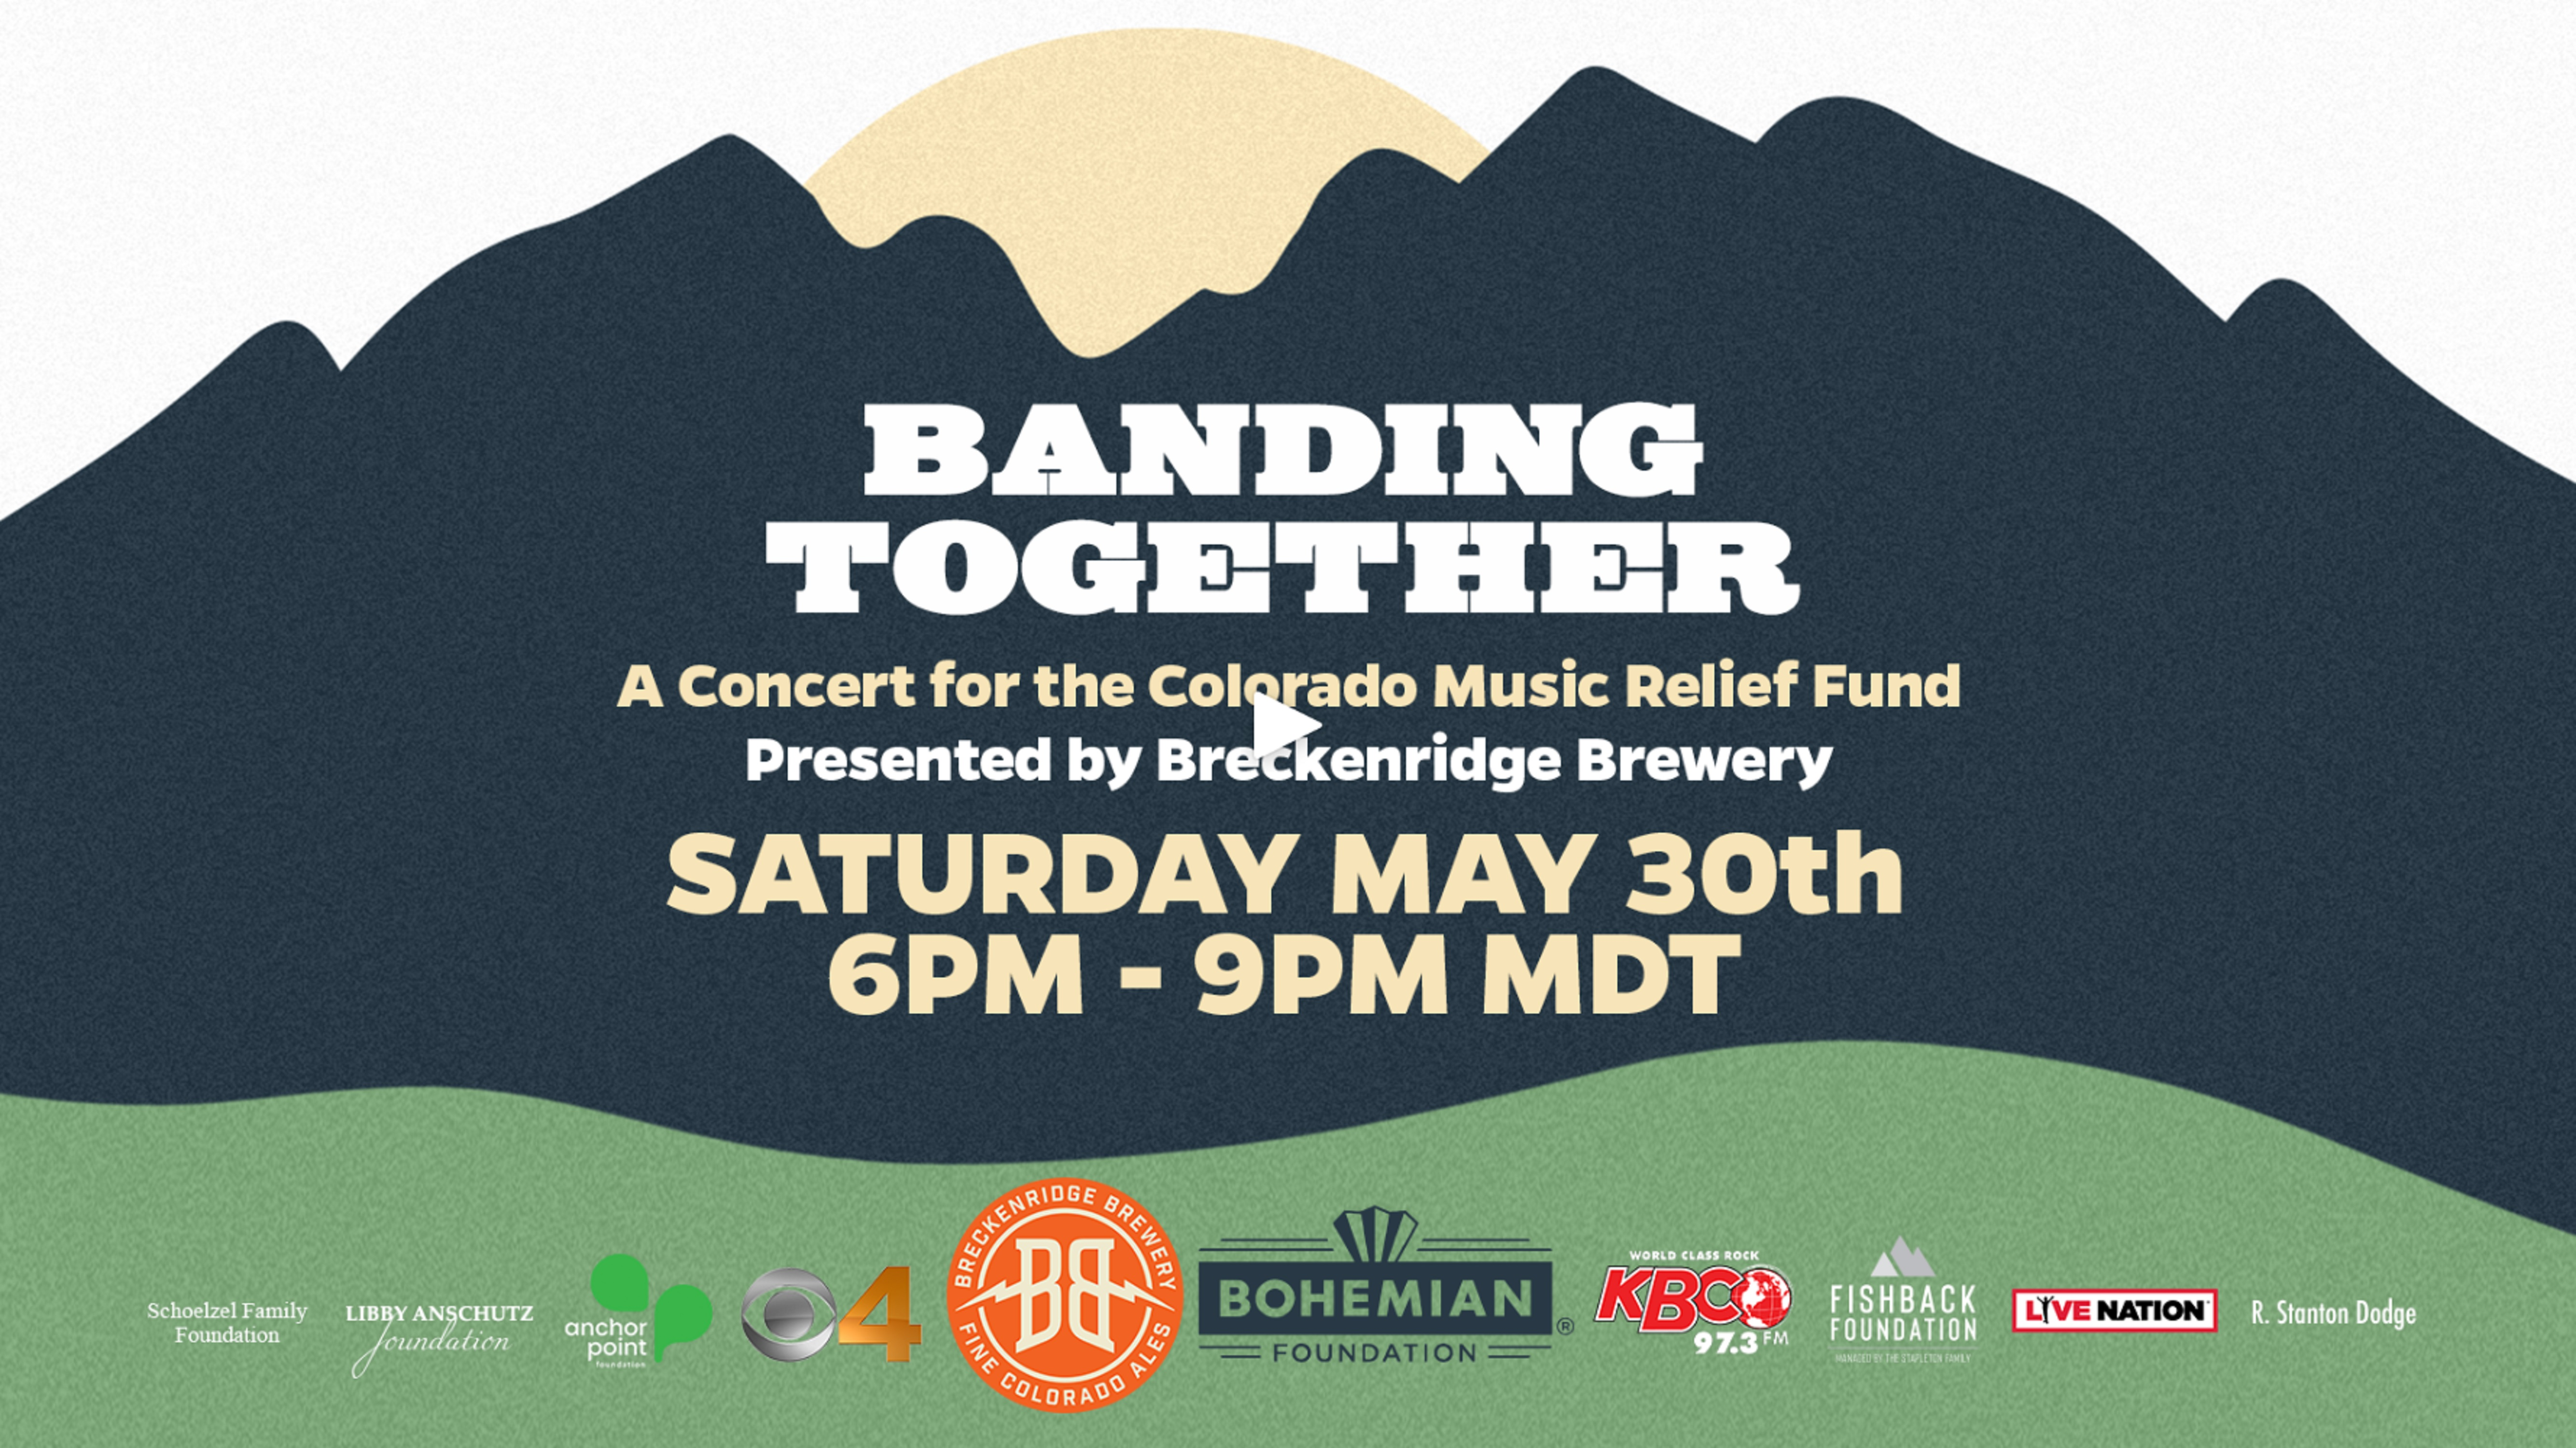 Colorado Music Relief Fund Raises Over $625,000 with 'Banding Together' Concert